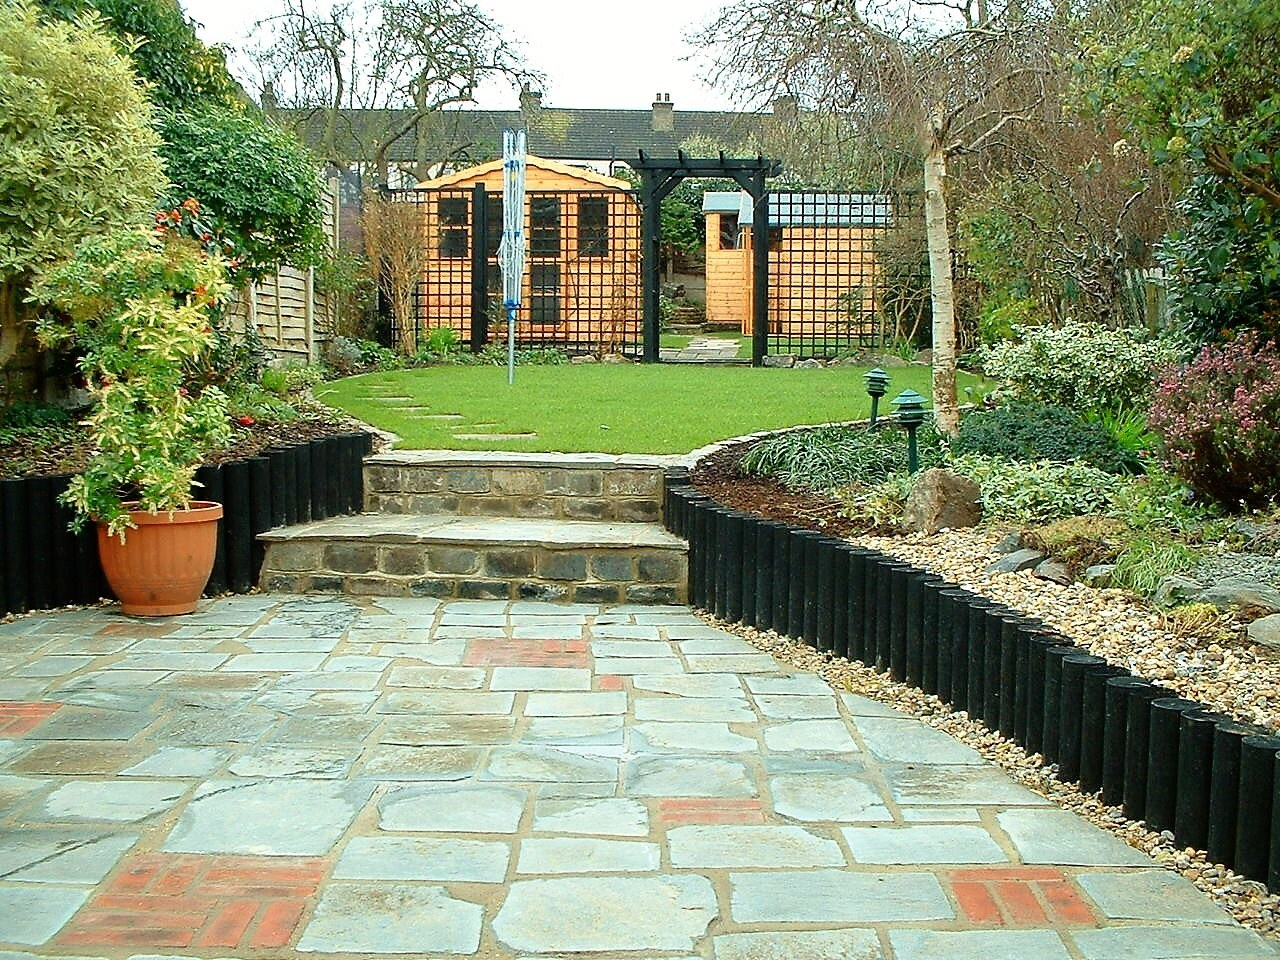 Gravesend patio - to this